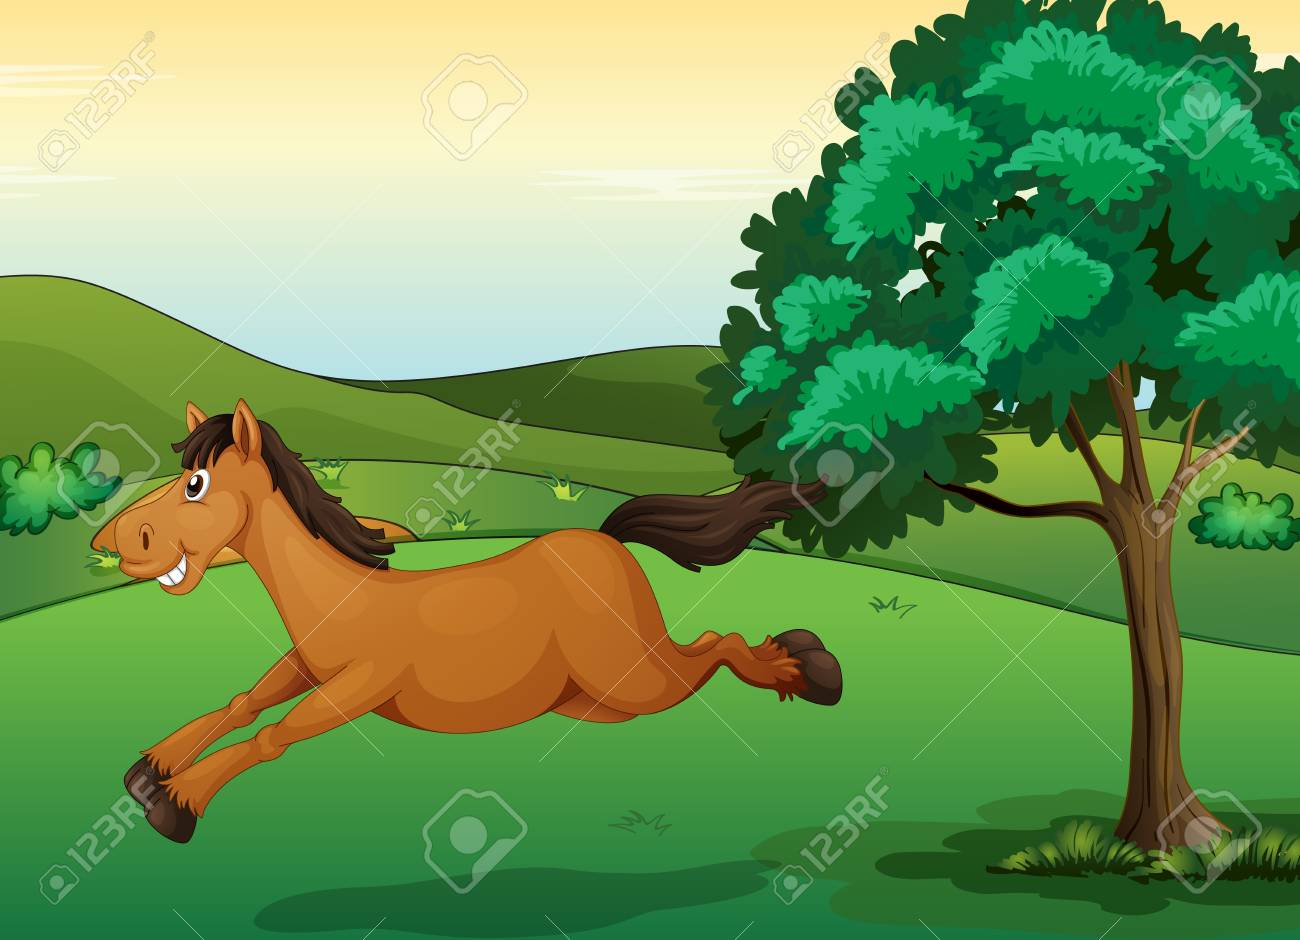 Illustration of a smiling horse in a beautiful nature Stock Vector - 17100526